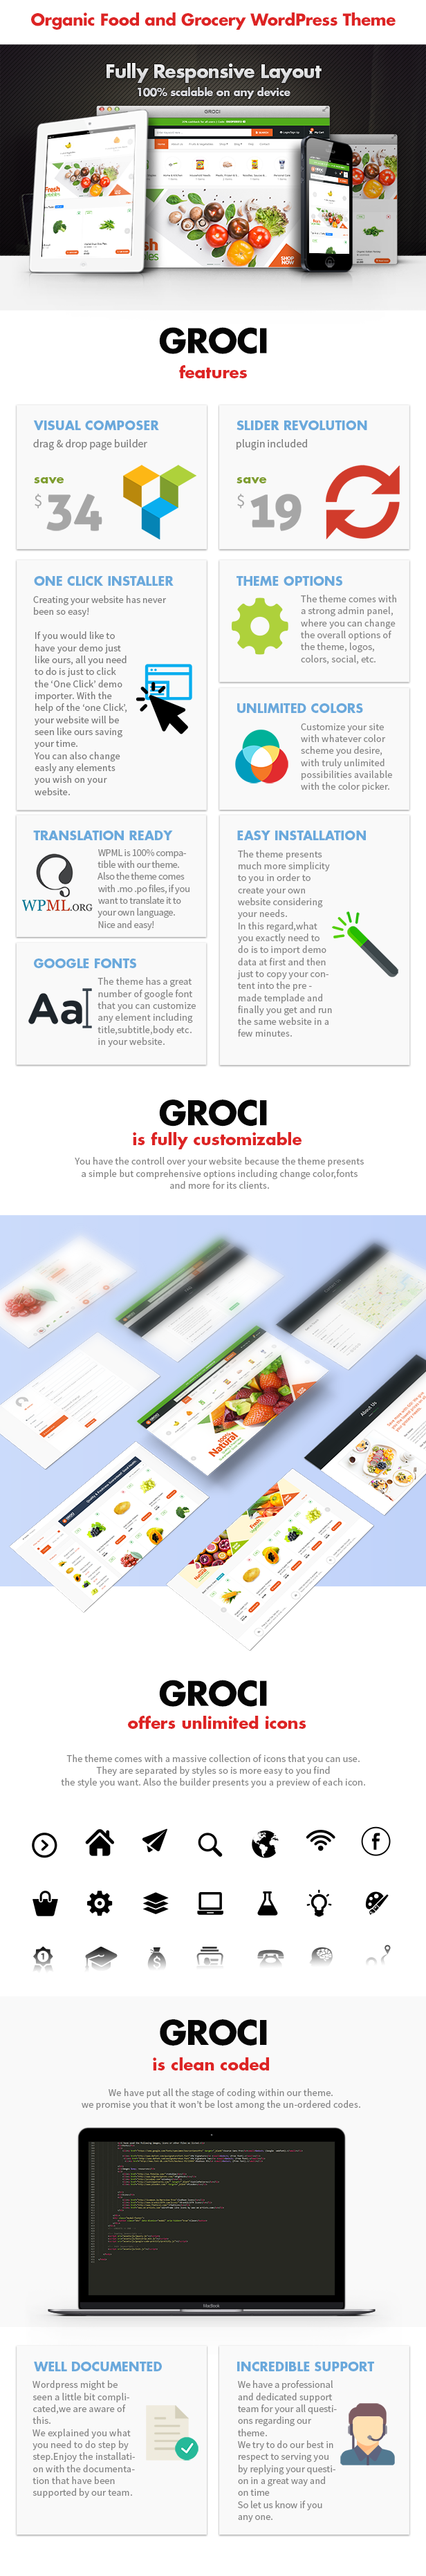 Groci - Organic Food and Grocery Market WordPress Theme - 3